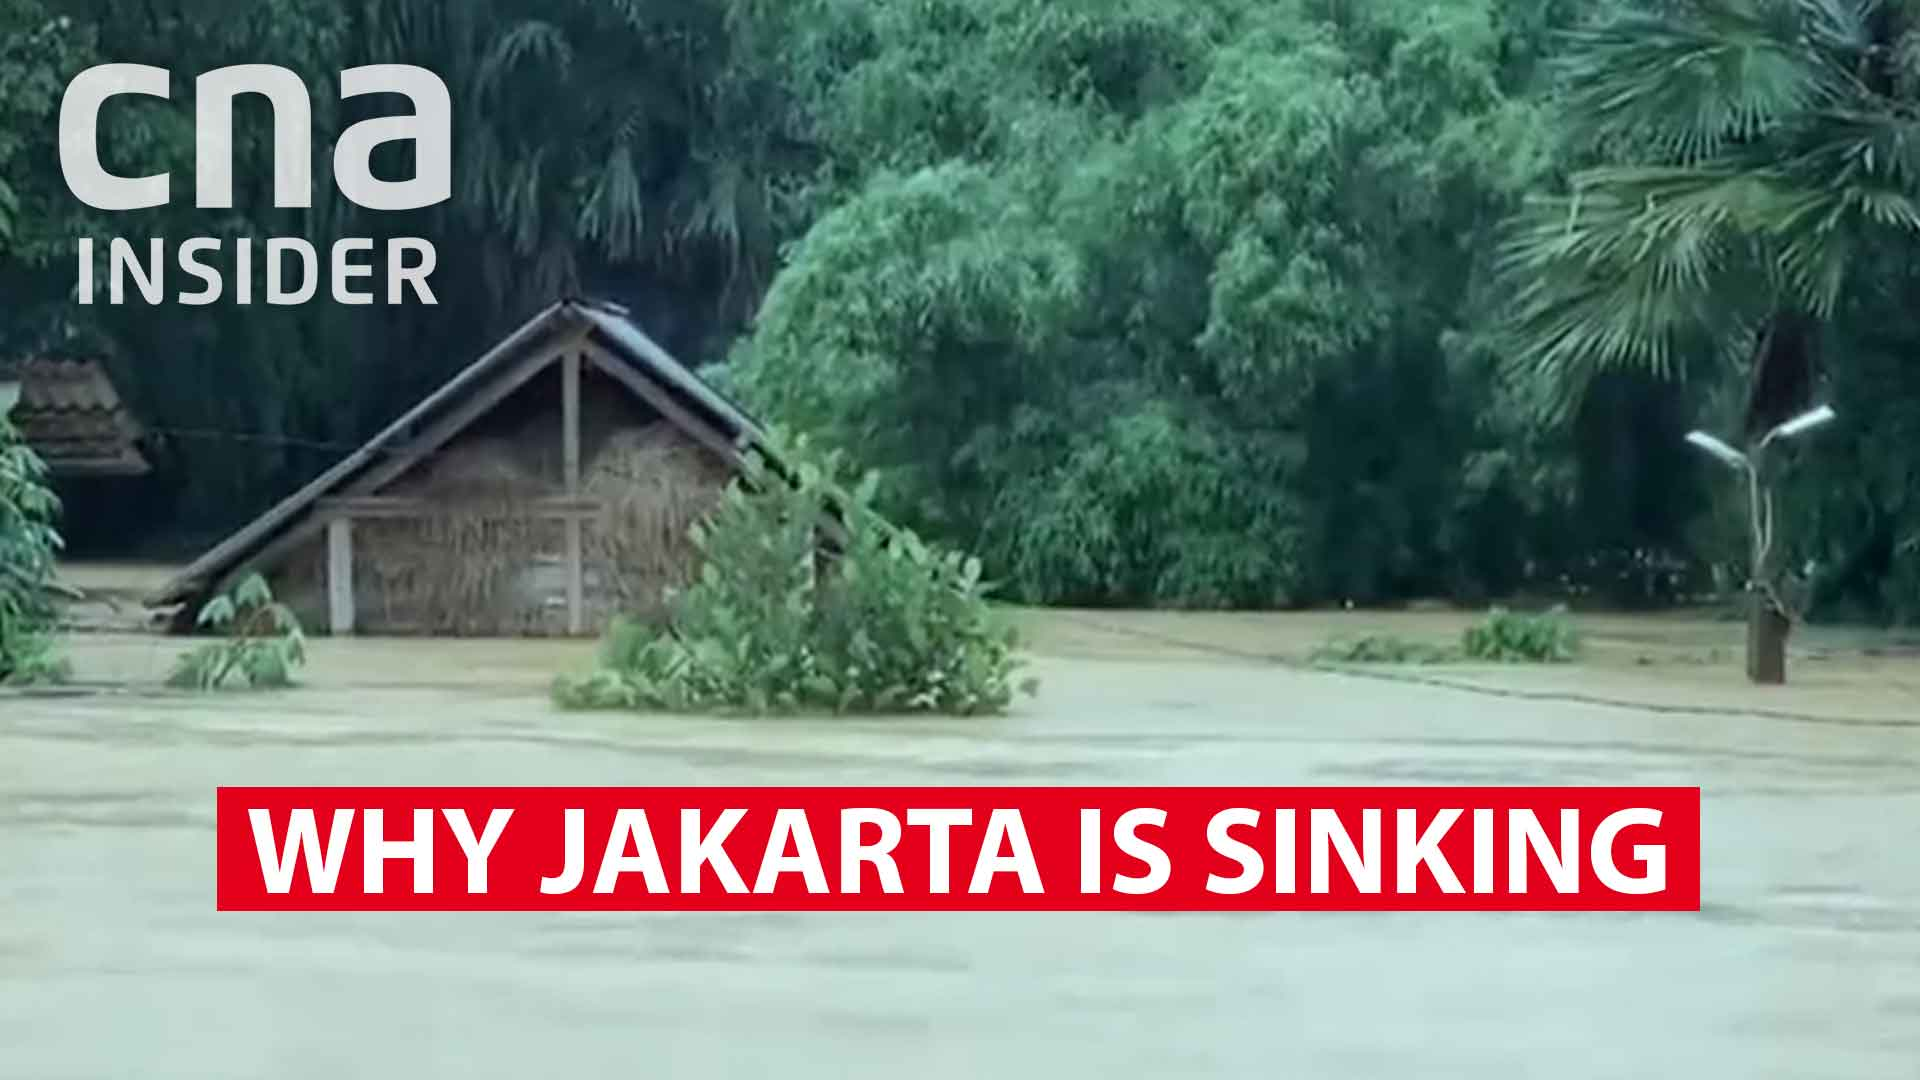 Why Jakarta is sinking